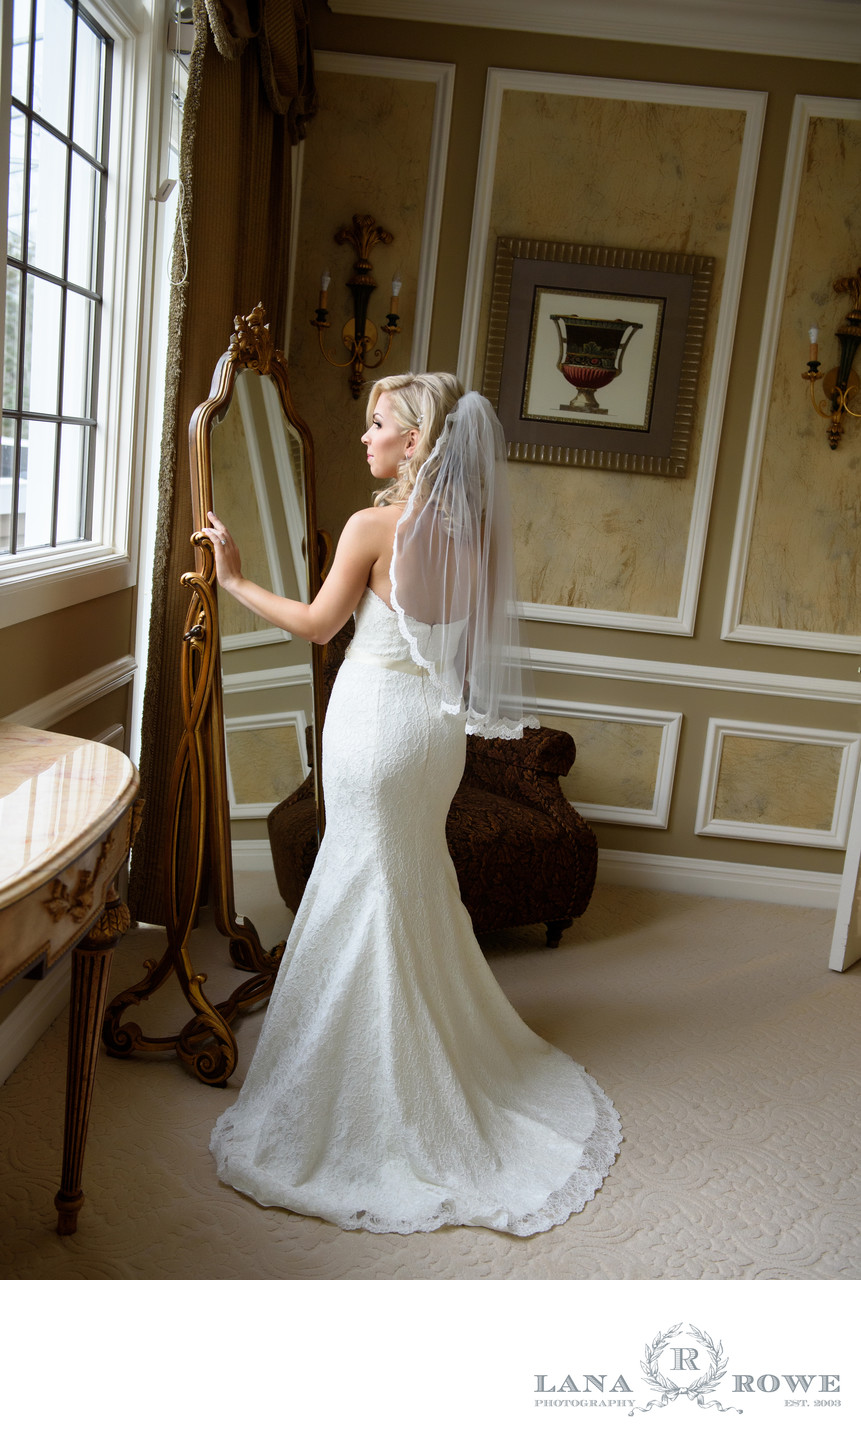 stonebridge bridal suite